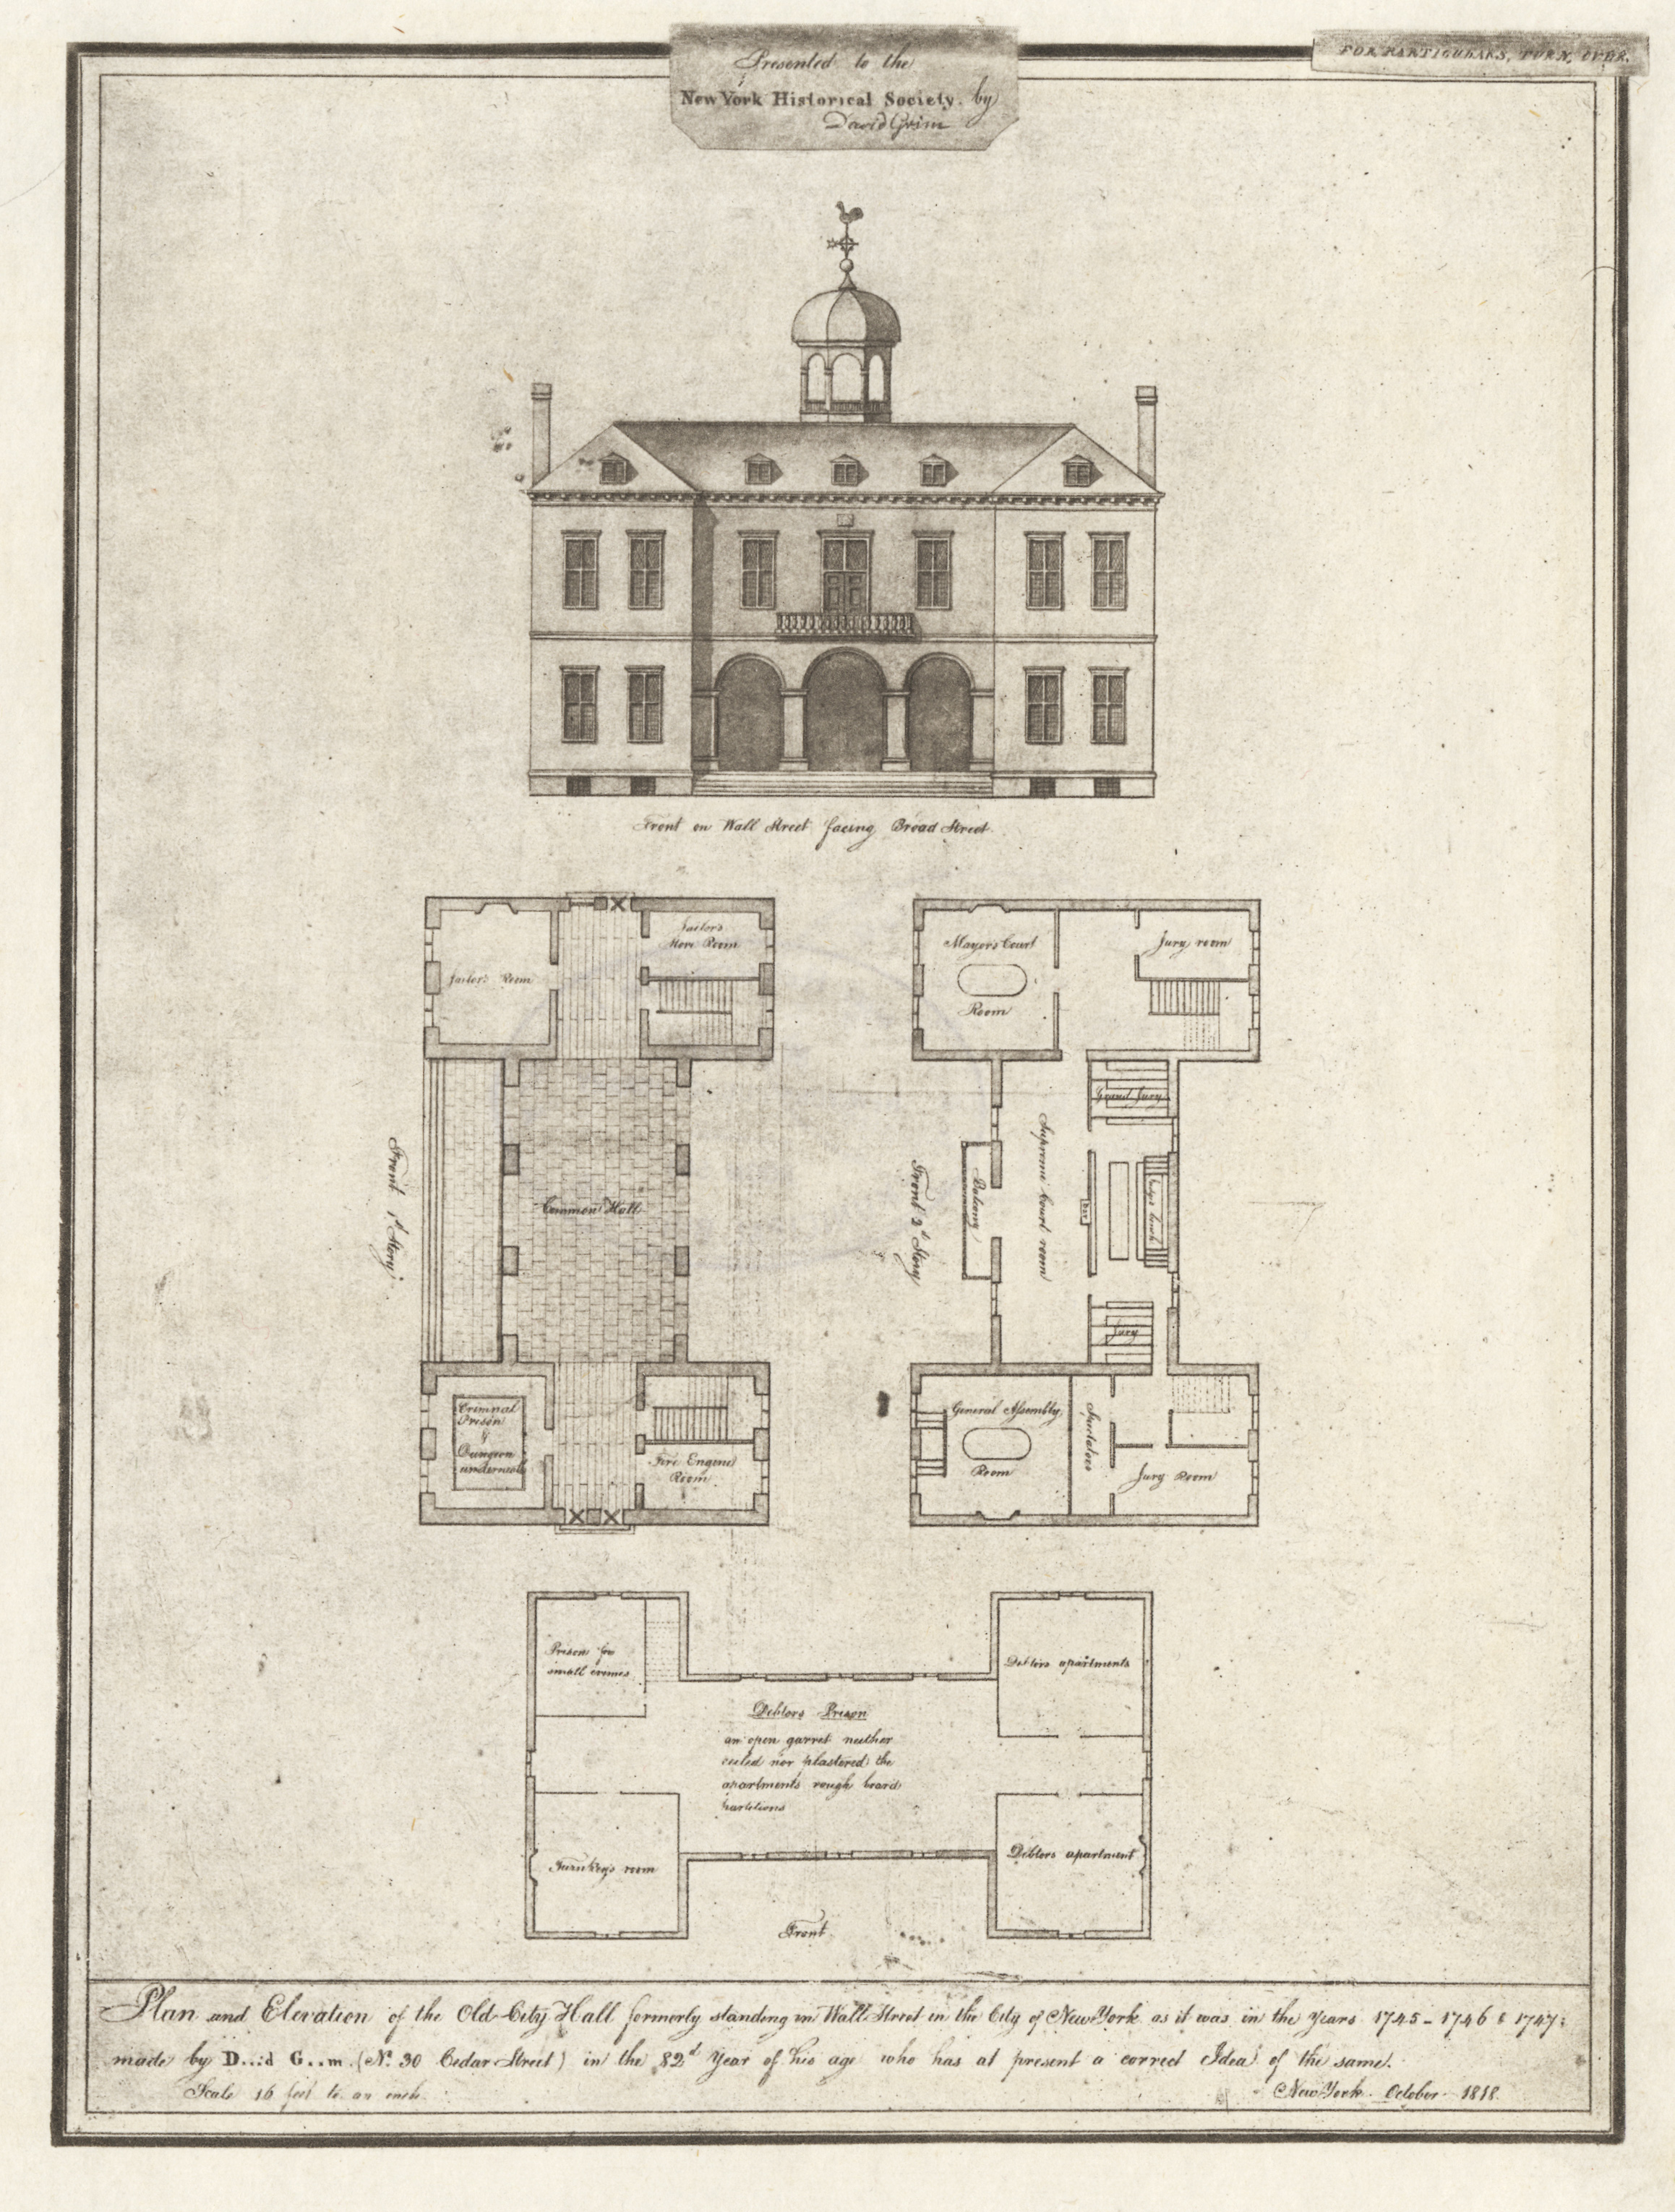 Text beneath drawing reads:  Plan and elevation of the Old-City Hall formerly standing on Wall Street in the City of New York as it was in the years 1745-1756 & 1746; made by David Grim (N. 30 Cedar Street) in the 82nd year of his age who has at present a correct idea of the same. New York, October 1818 . Copied by I.N. Phelps Stokes, in 1919 for  The Iconography of Manhattan Island, 1498-1909.  Much of the City Hall was given over to court rooms in this era, and the basement was a debtor's prison.  NYC Municipal Library.